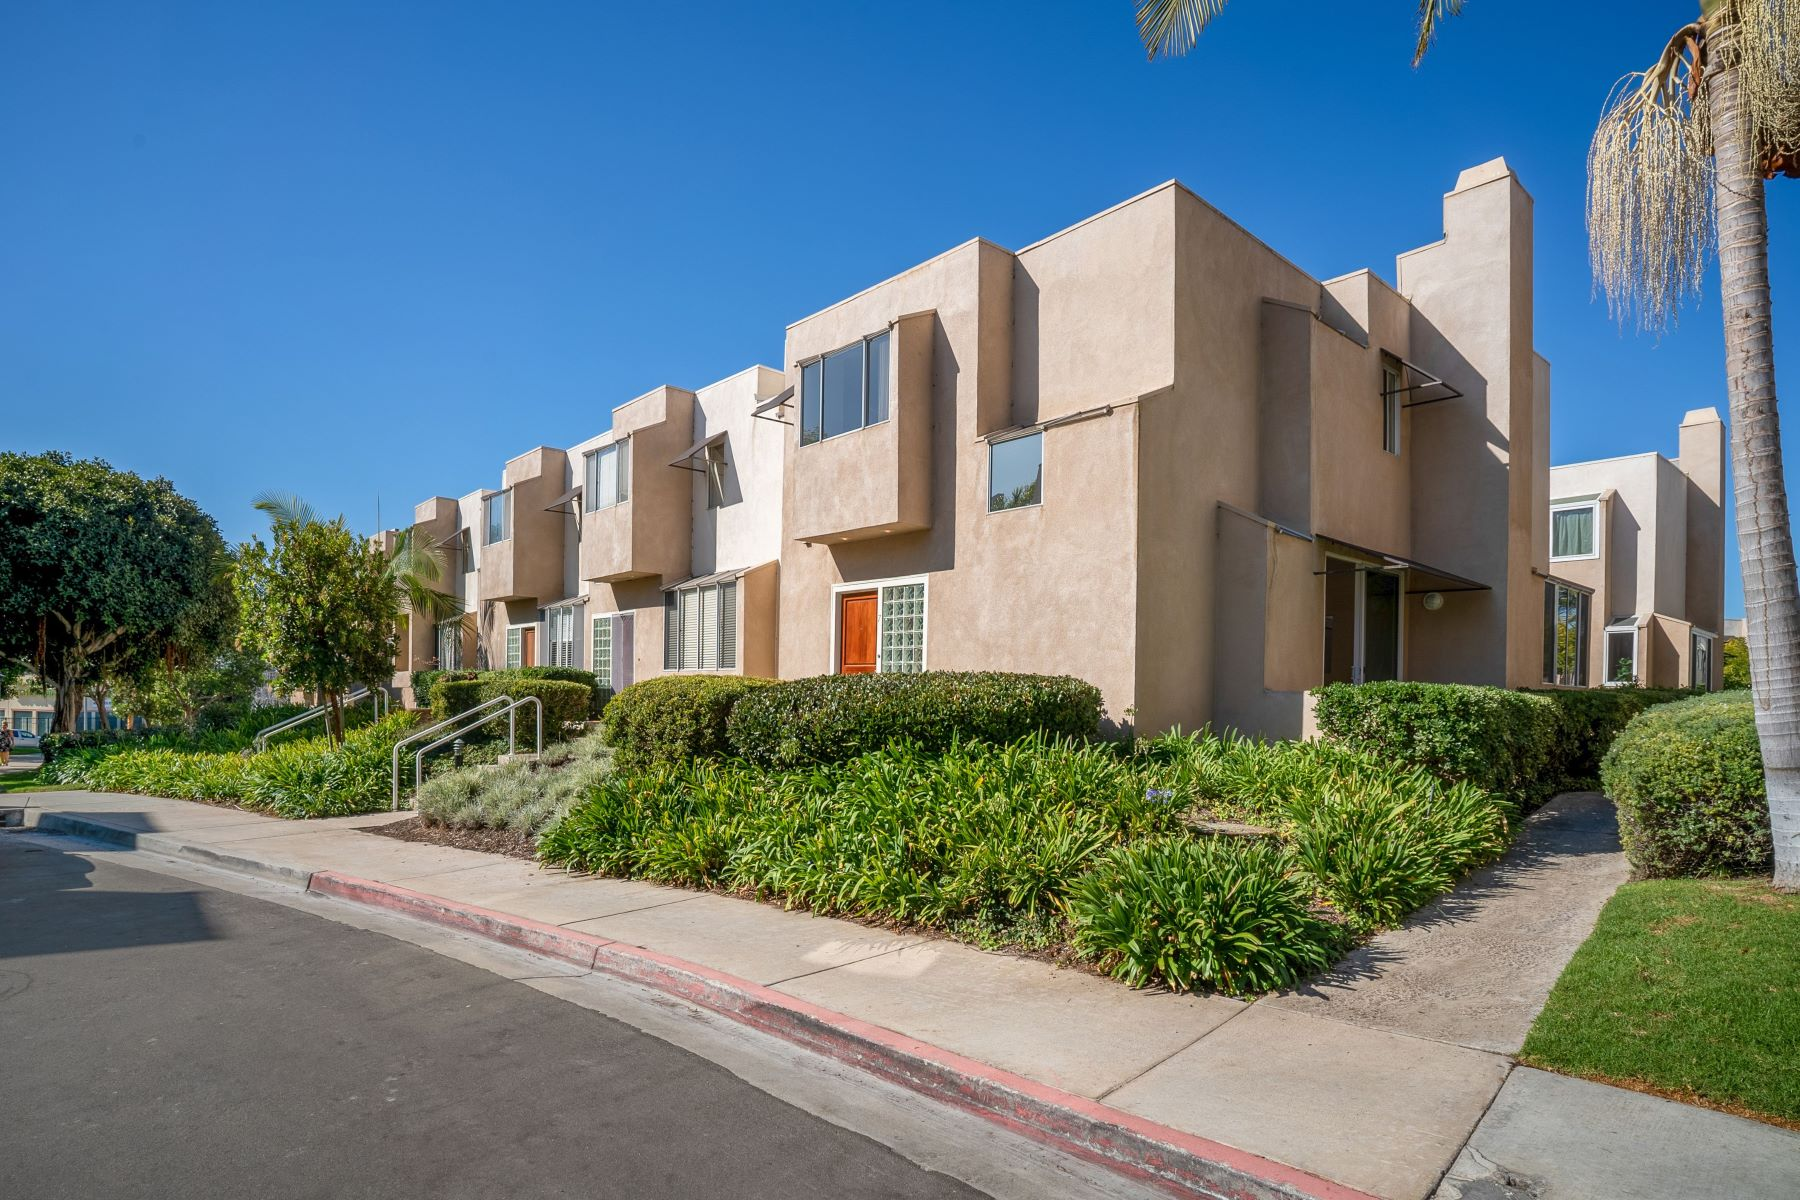 Condominiums for Sale at 501 Herondo Street #7, Hermosa Beach, CA 90254 501 Herondo Street #7 Hermosa Beach, California 90254 United States